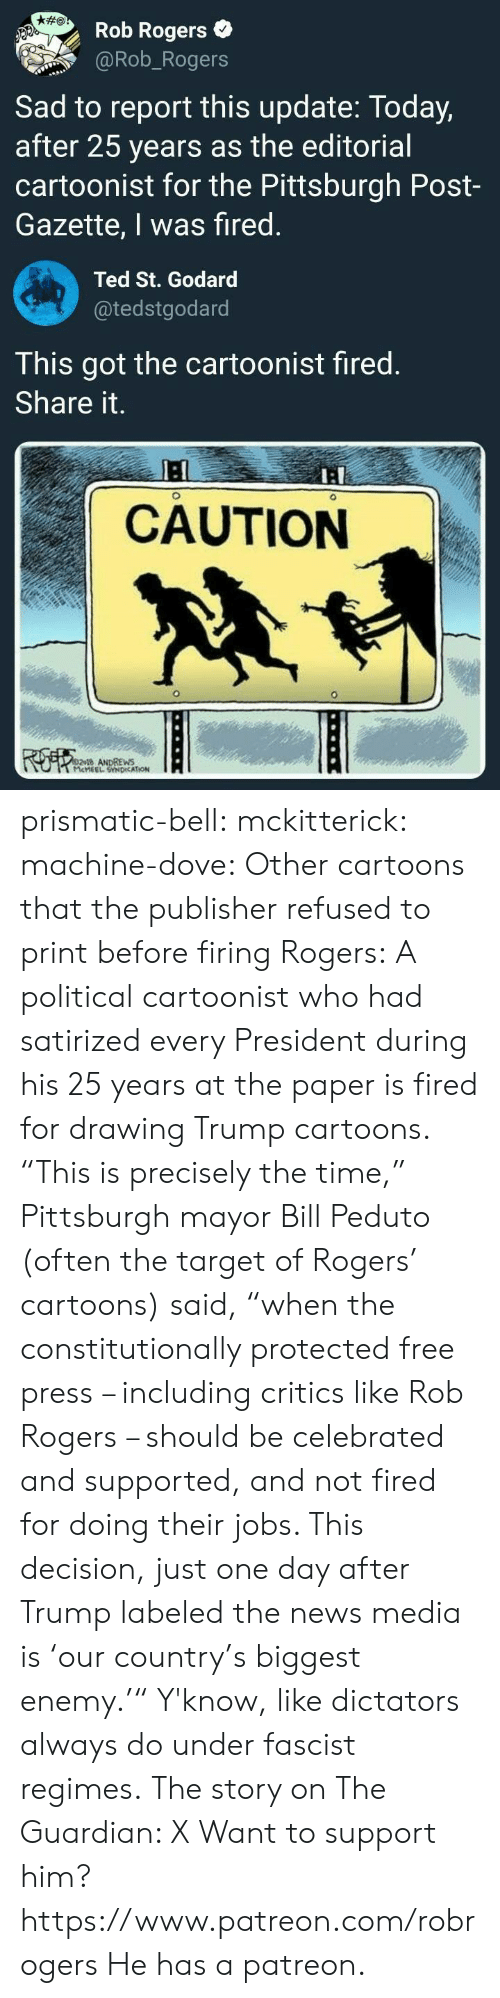 """25 Years: Rob Rogers  @Rob_Rogers  Sad to report this update: Today,  after 25 years as the editorial  cartoonist for the Pittsburgh Post-  Gazette, I was fired  Ted St. Godard  @tedstgodard  This got the cartoonist fired  Share it.  I:  CAUTION  ANDREWS prismatic-bell: mckitterick:  machine-dove:  Other cartoons that the publisher refused to print before firing Rogers:   A political cartoonist who had satirized every President during his 25 years at the paper is fired for drawing Trump cartoons.  """"This is precisely the time,"""" Pittsburgh mayor Bill Peduto (often the target of Rogers' cartoons) said, """"when the constitutionally protected free press – including critics like Rob Rogers – should be celebrated and supported, and not fired for doing their jobs. This decision, just one day after Trump labeled the news media is 'our country's biggest enemy.'"""" Y'know, like dictators always do under fascist regimes. The story on The Guardian: X  Want to support him?  https://www.patreon.com/robrogers  He has a patreon."""